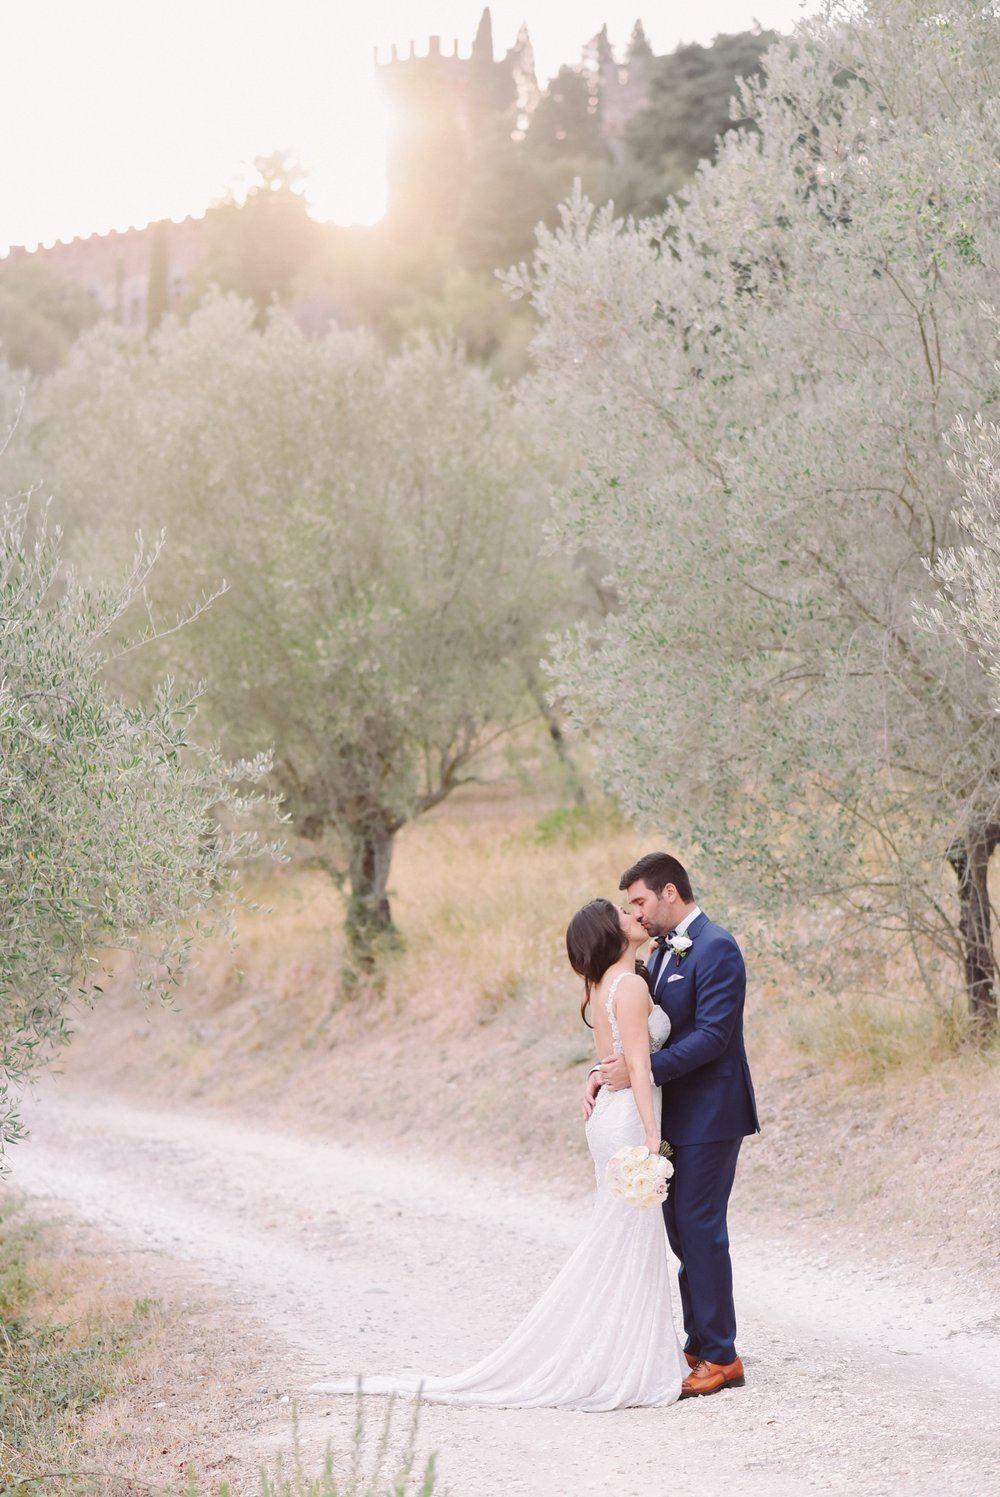 wedding-photographer-florence-vincigliata-tuscany_1102.jpg